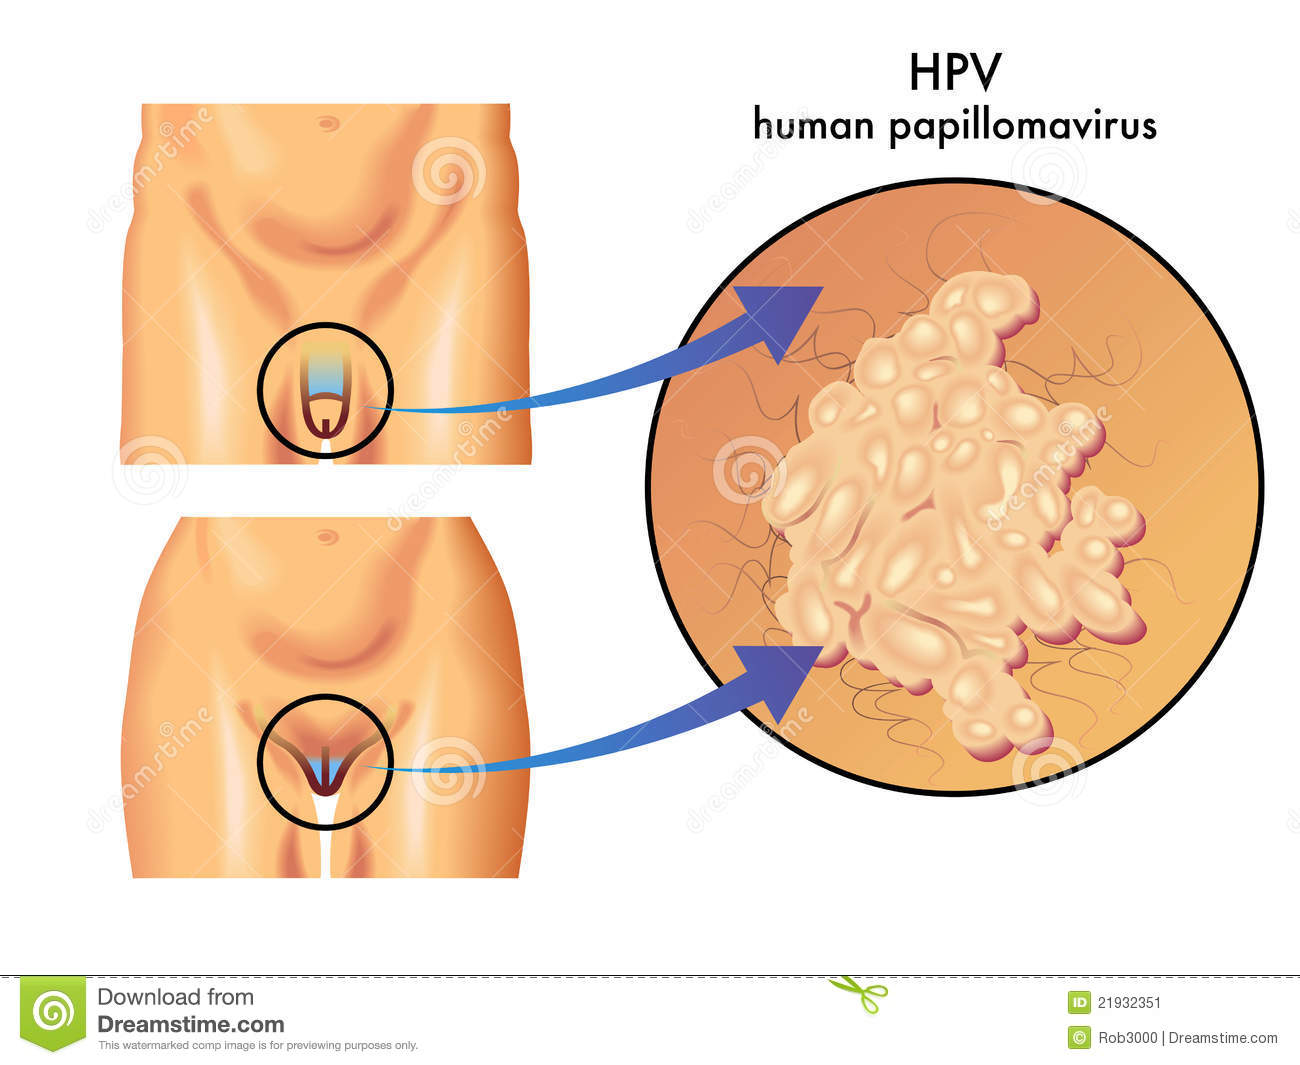 papilloma virus humans)